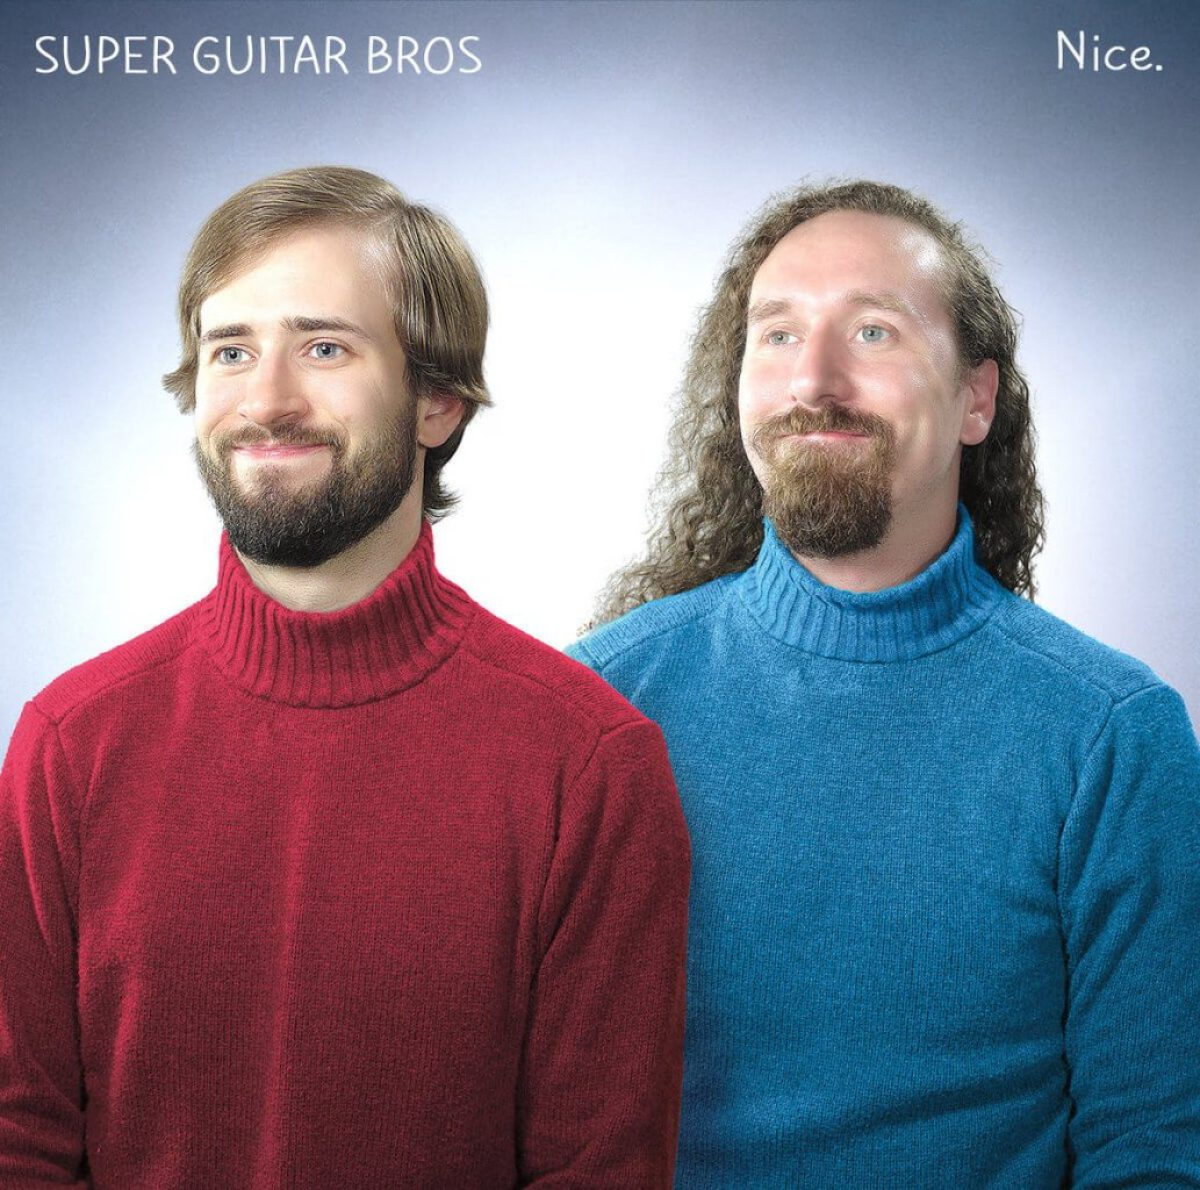 super-guitar-bros-nice